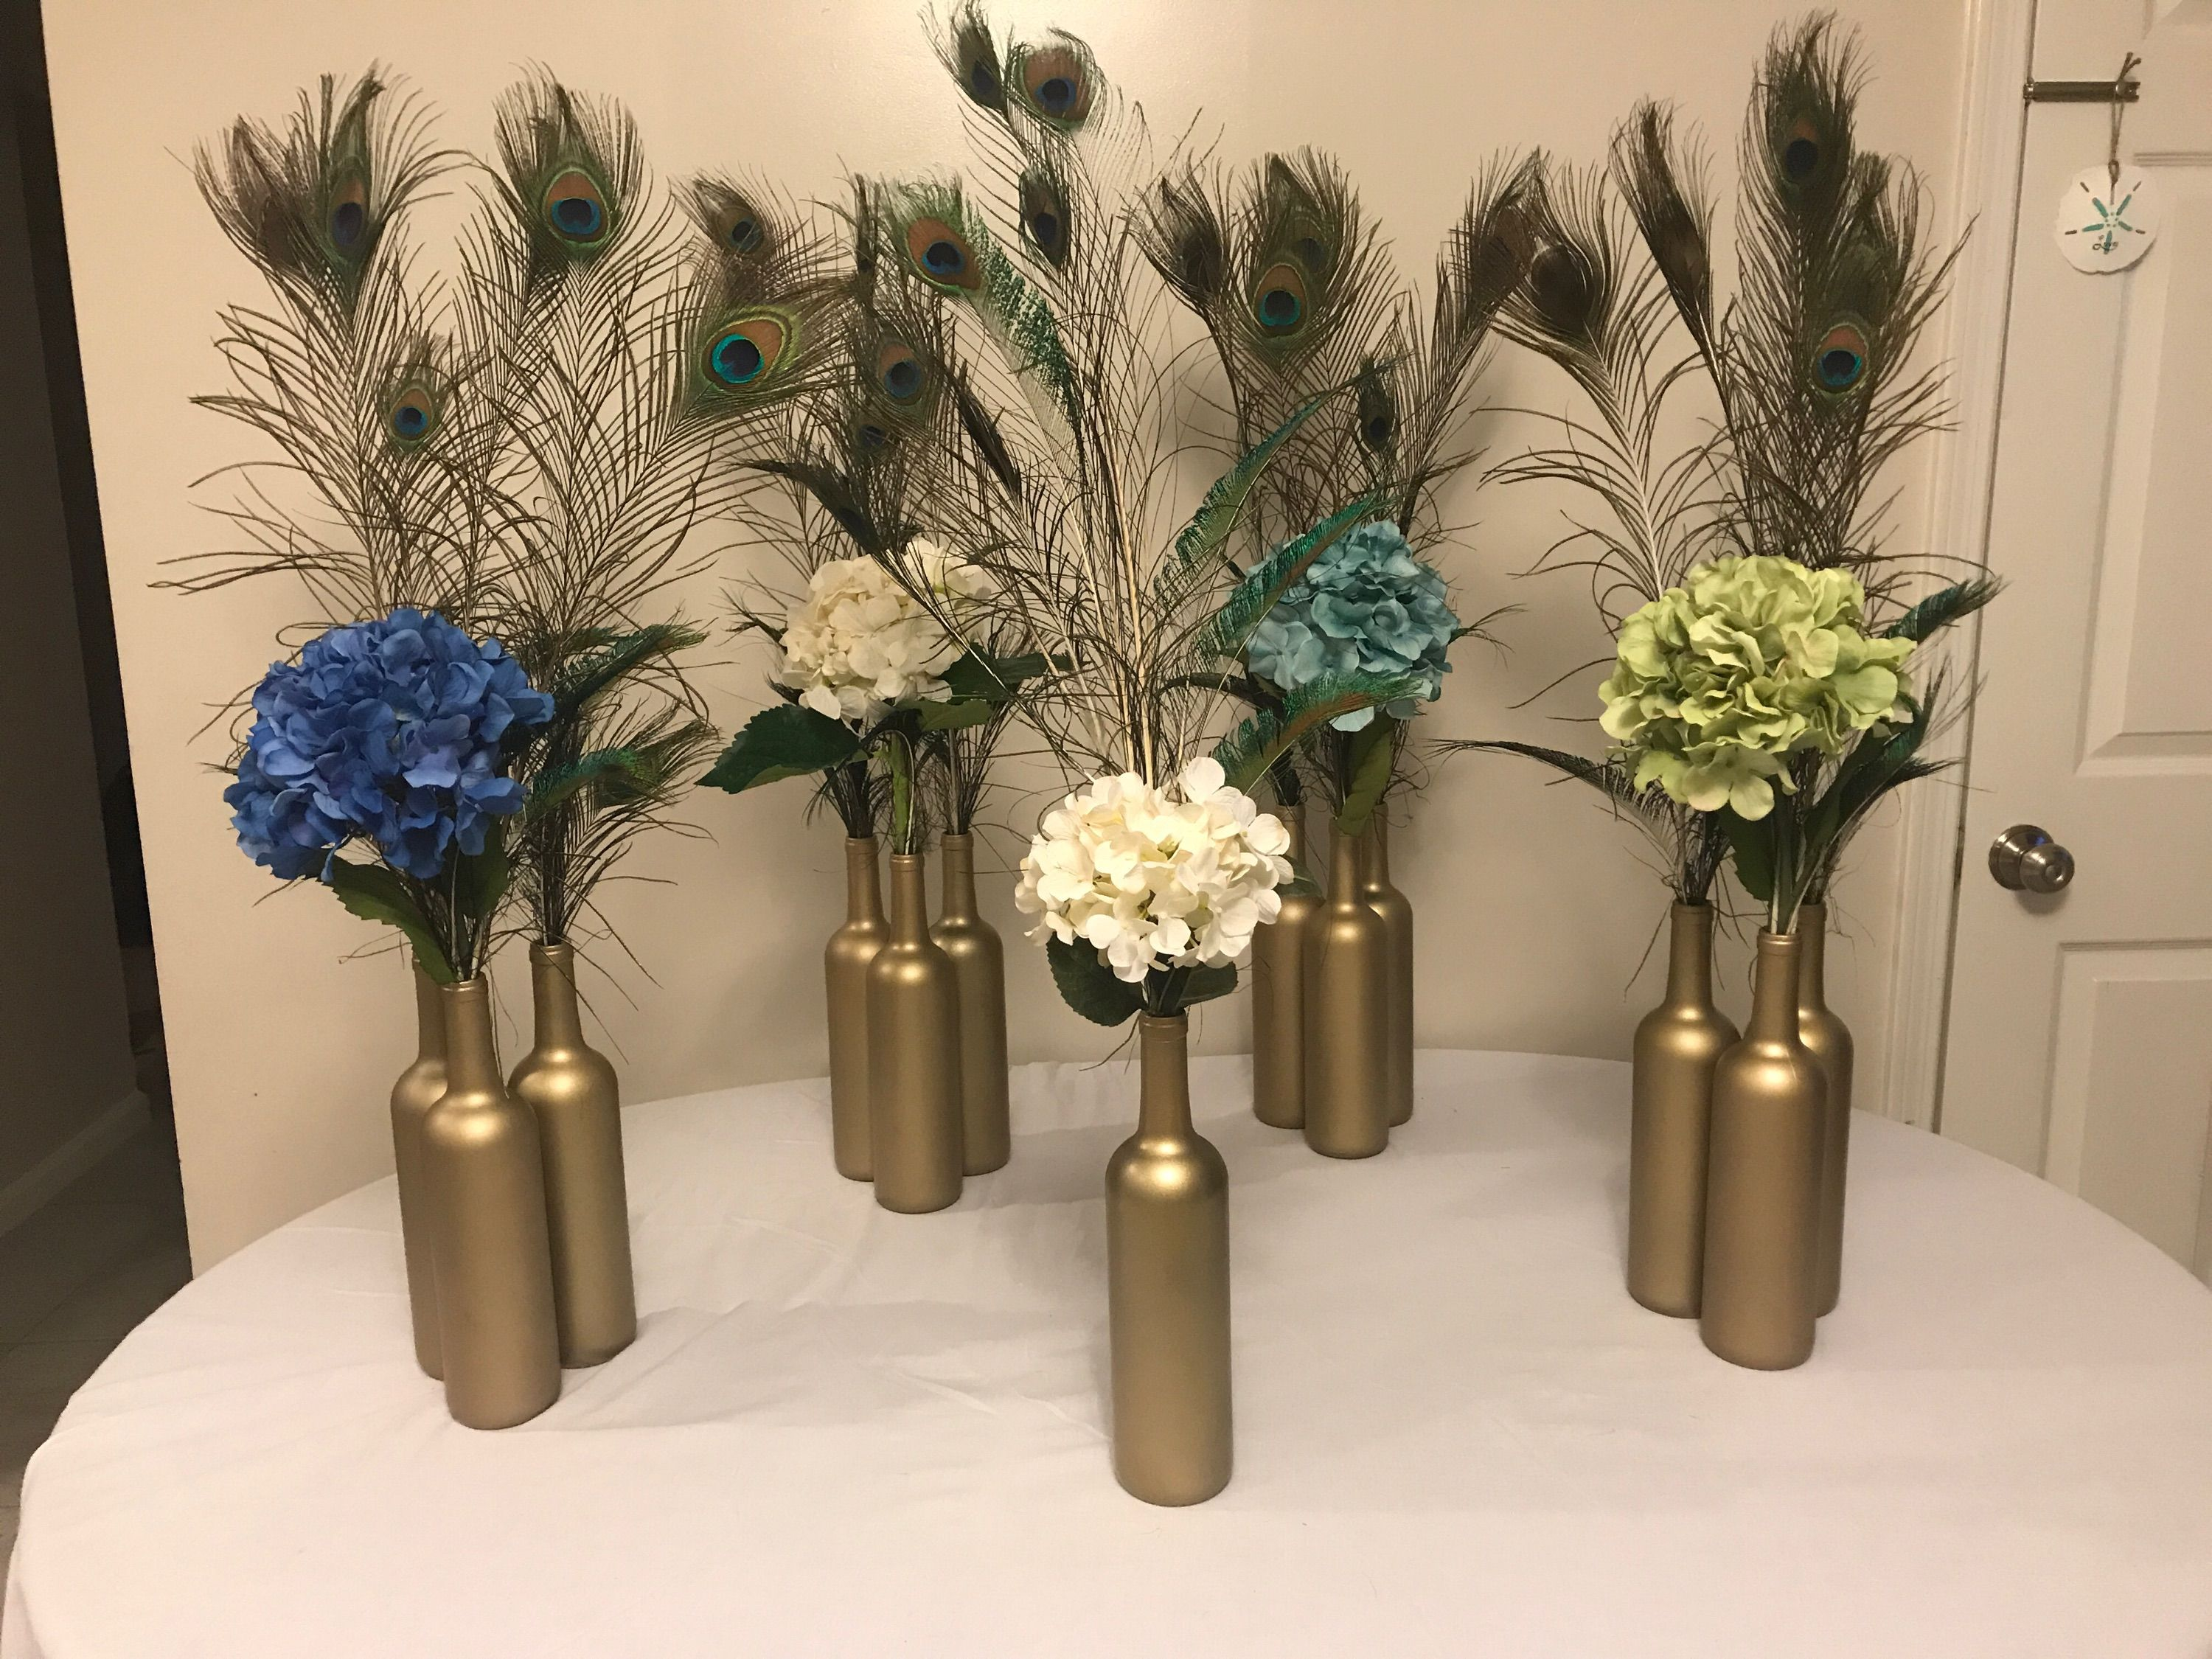 Peacock Wedding Centerpieces For Sale Message Me For Details Wedding Centerpieces For Sale Peacock Wedding Centerpieces Wedding Centerpieces